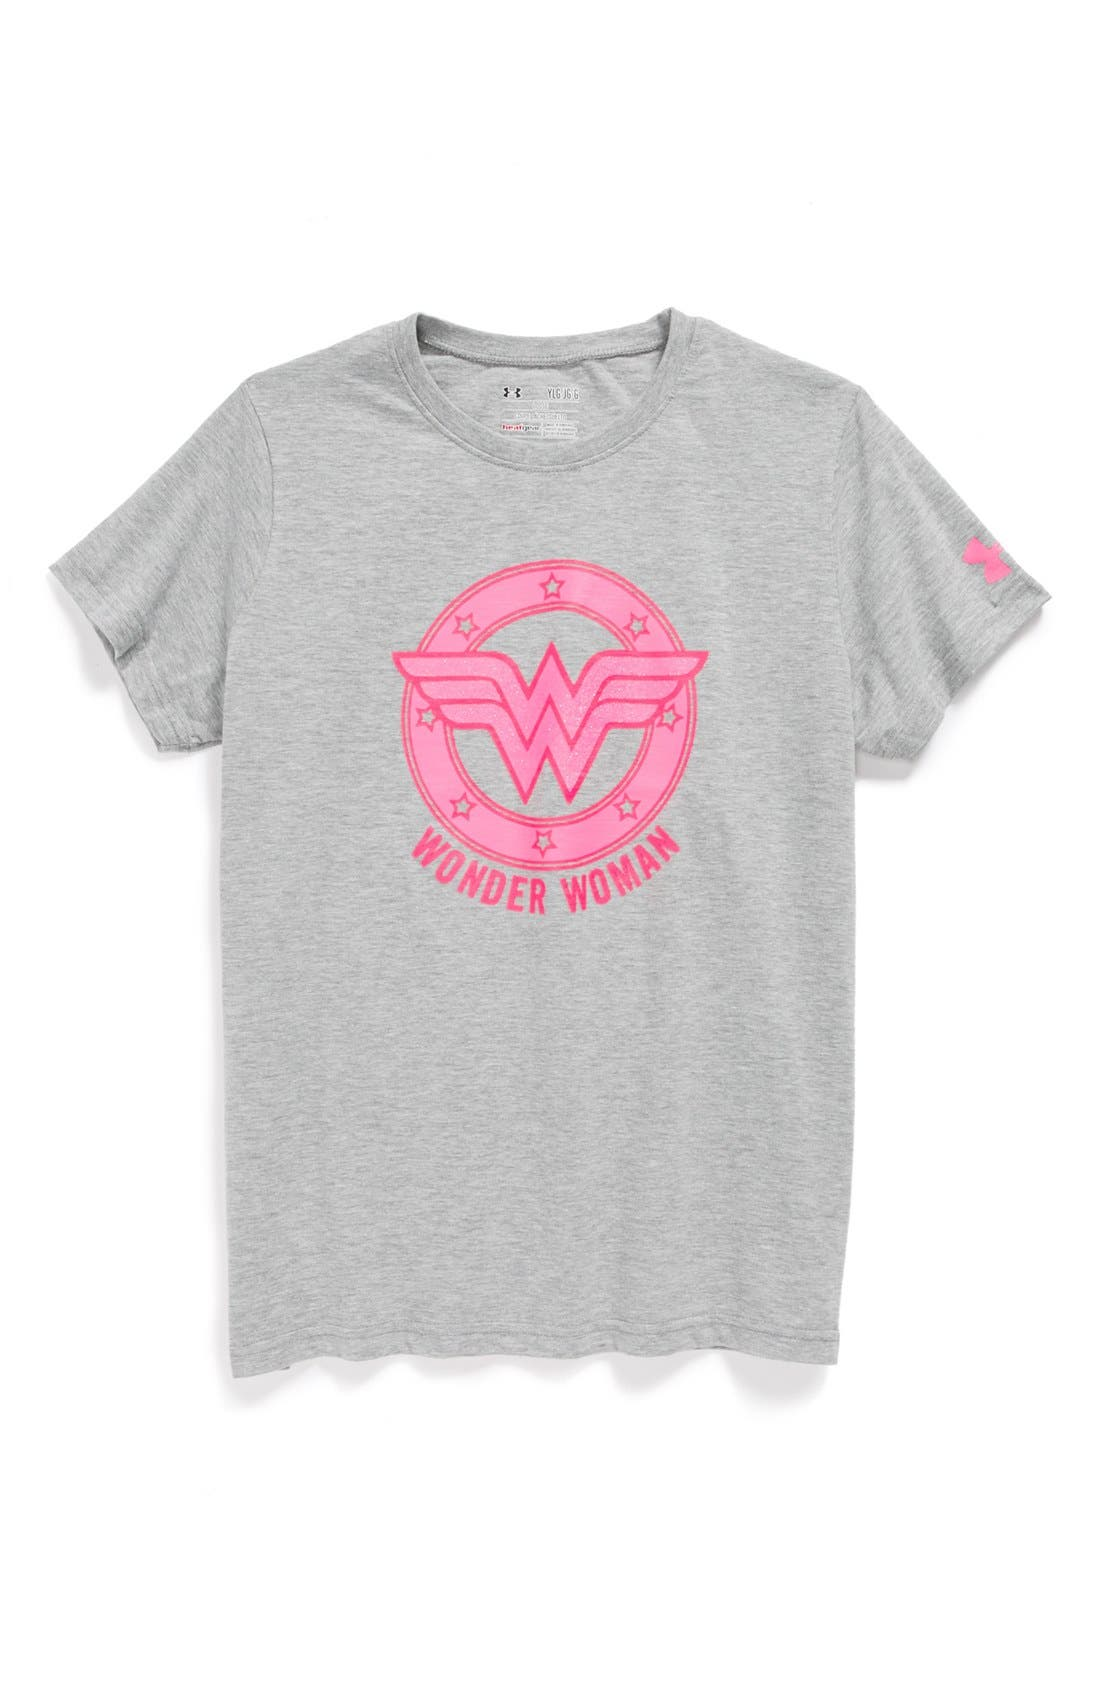 Alternate Image 1 Selected - Under Armour 'Wonder Woman' Charged Cotton® Tee (Little Girls & Big Girls)